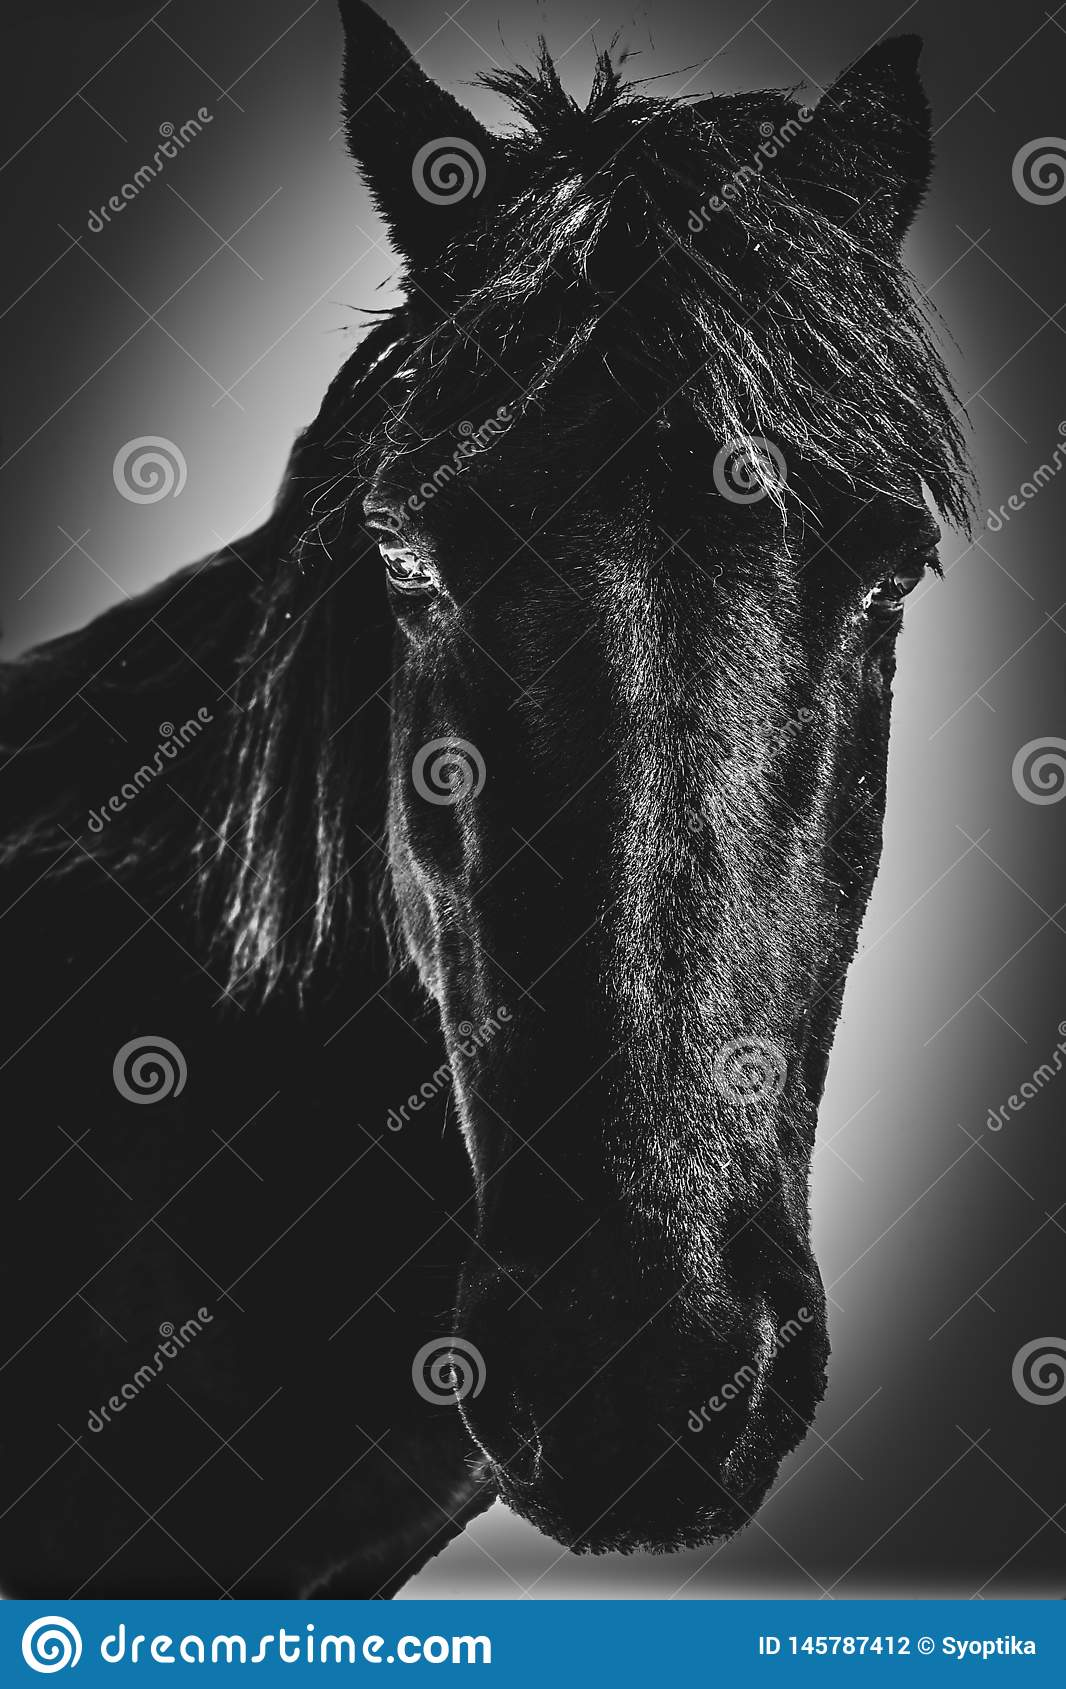 A Horse named Cole